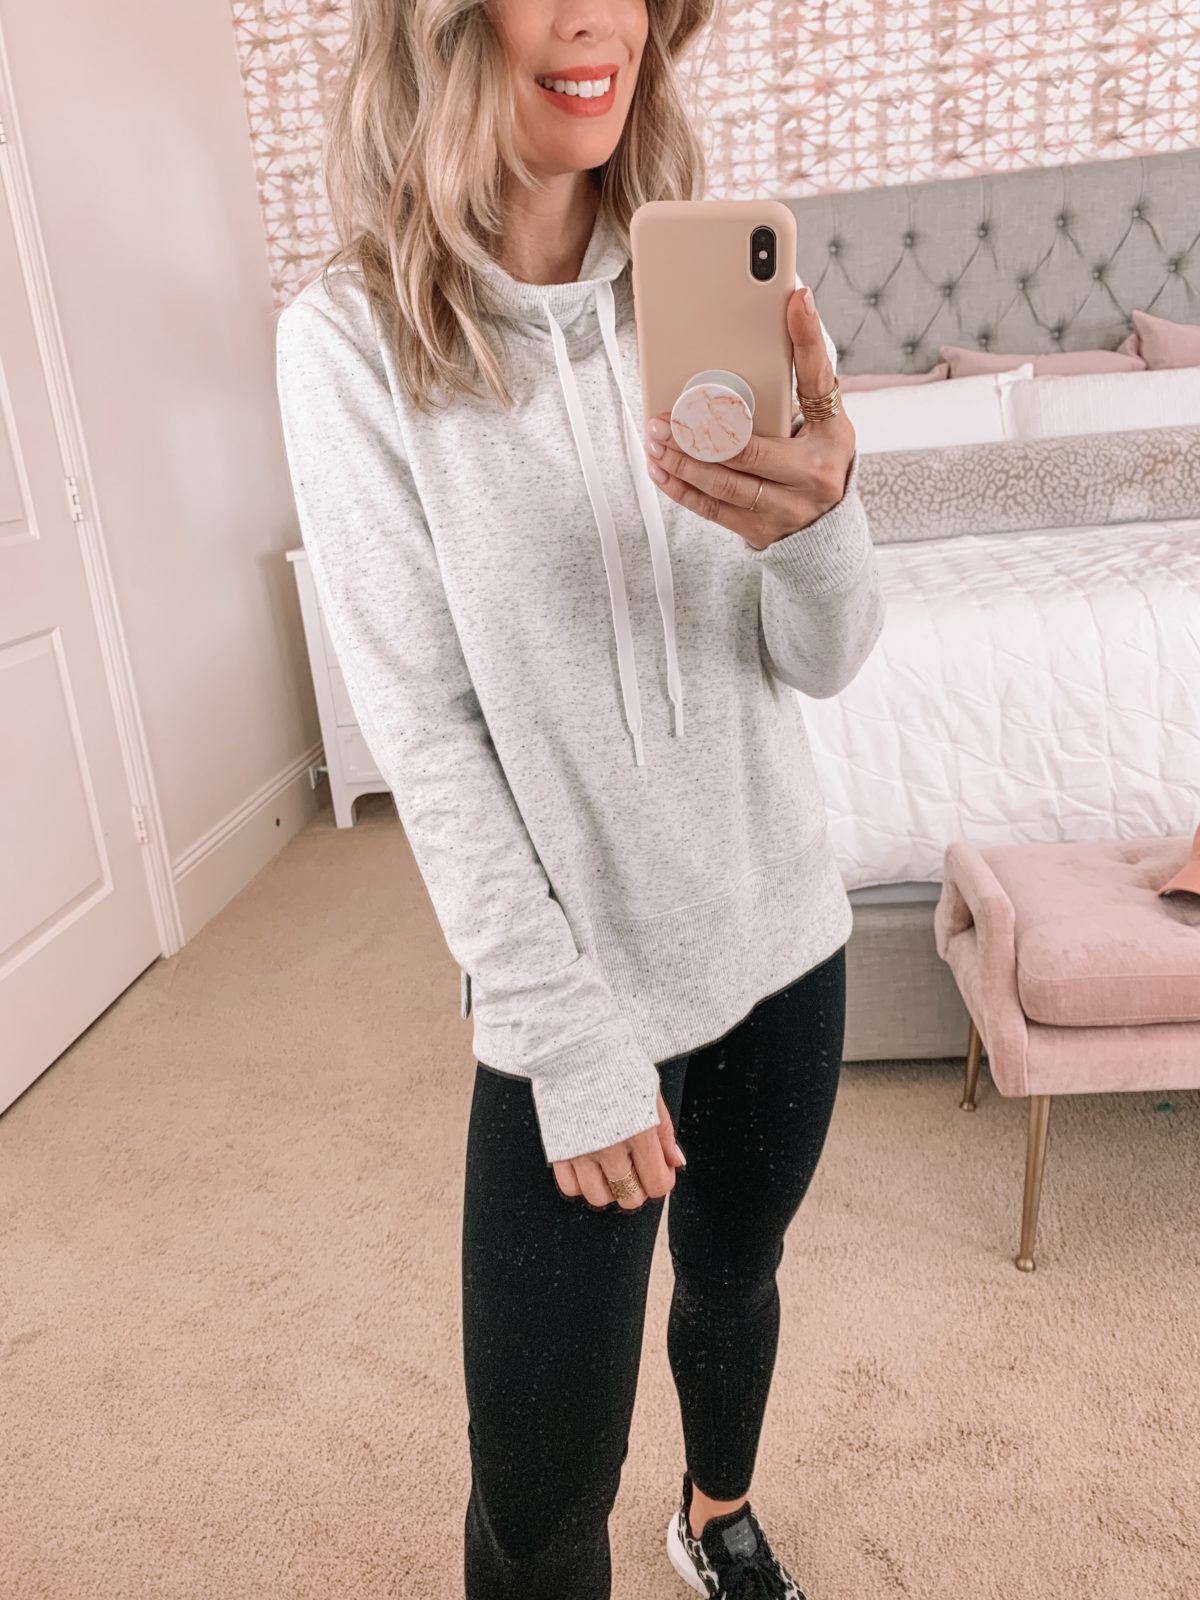 Amazon Fashion Faves, Tunic Sweatshirt, Leggings, Leopard Sneakers